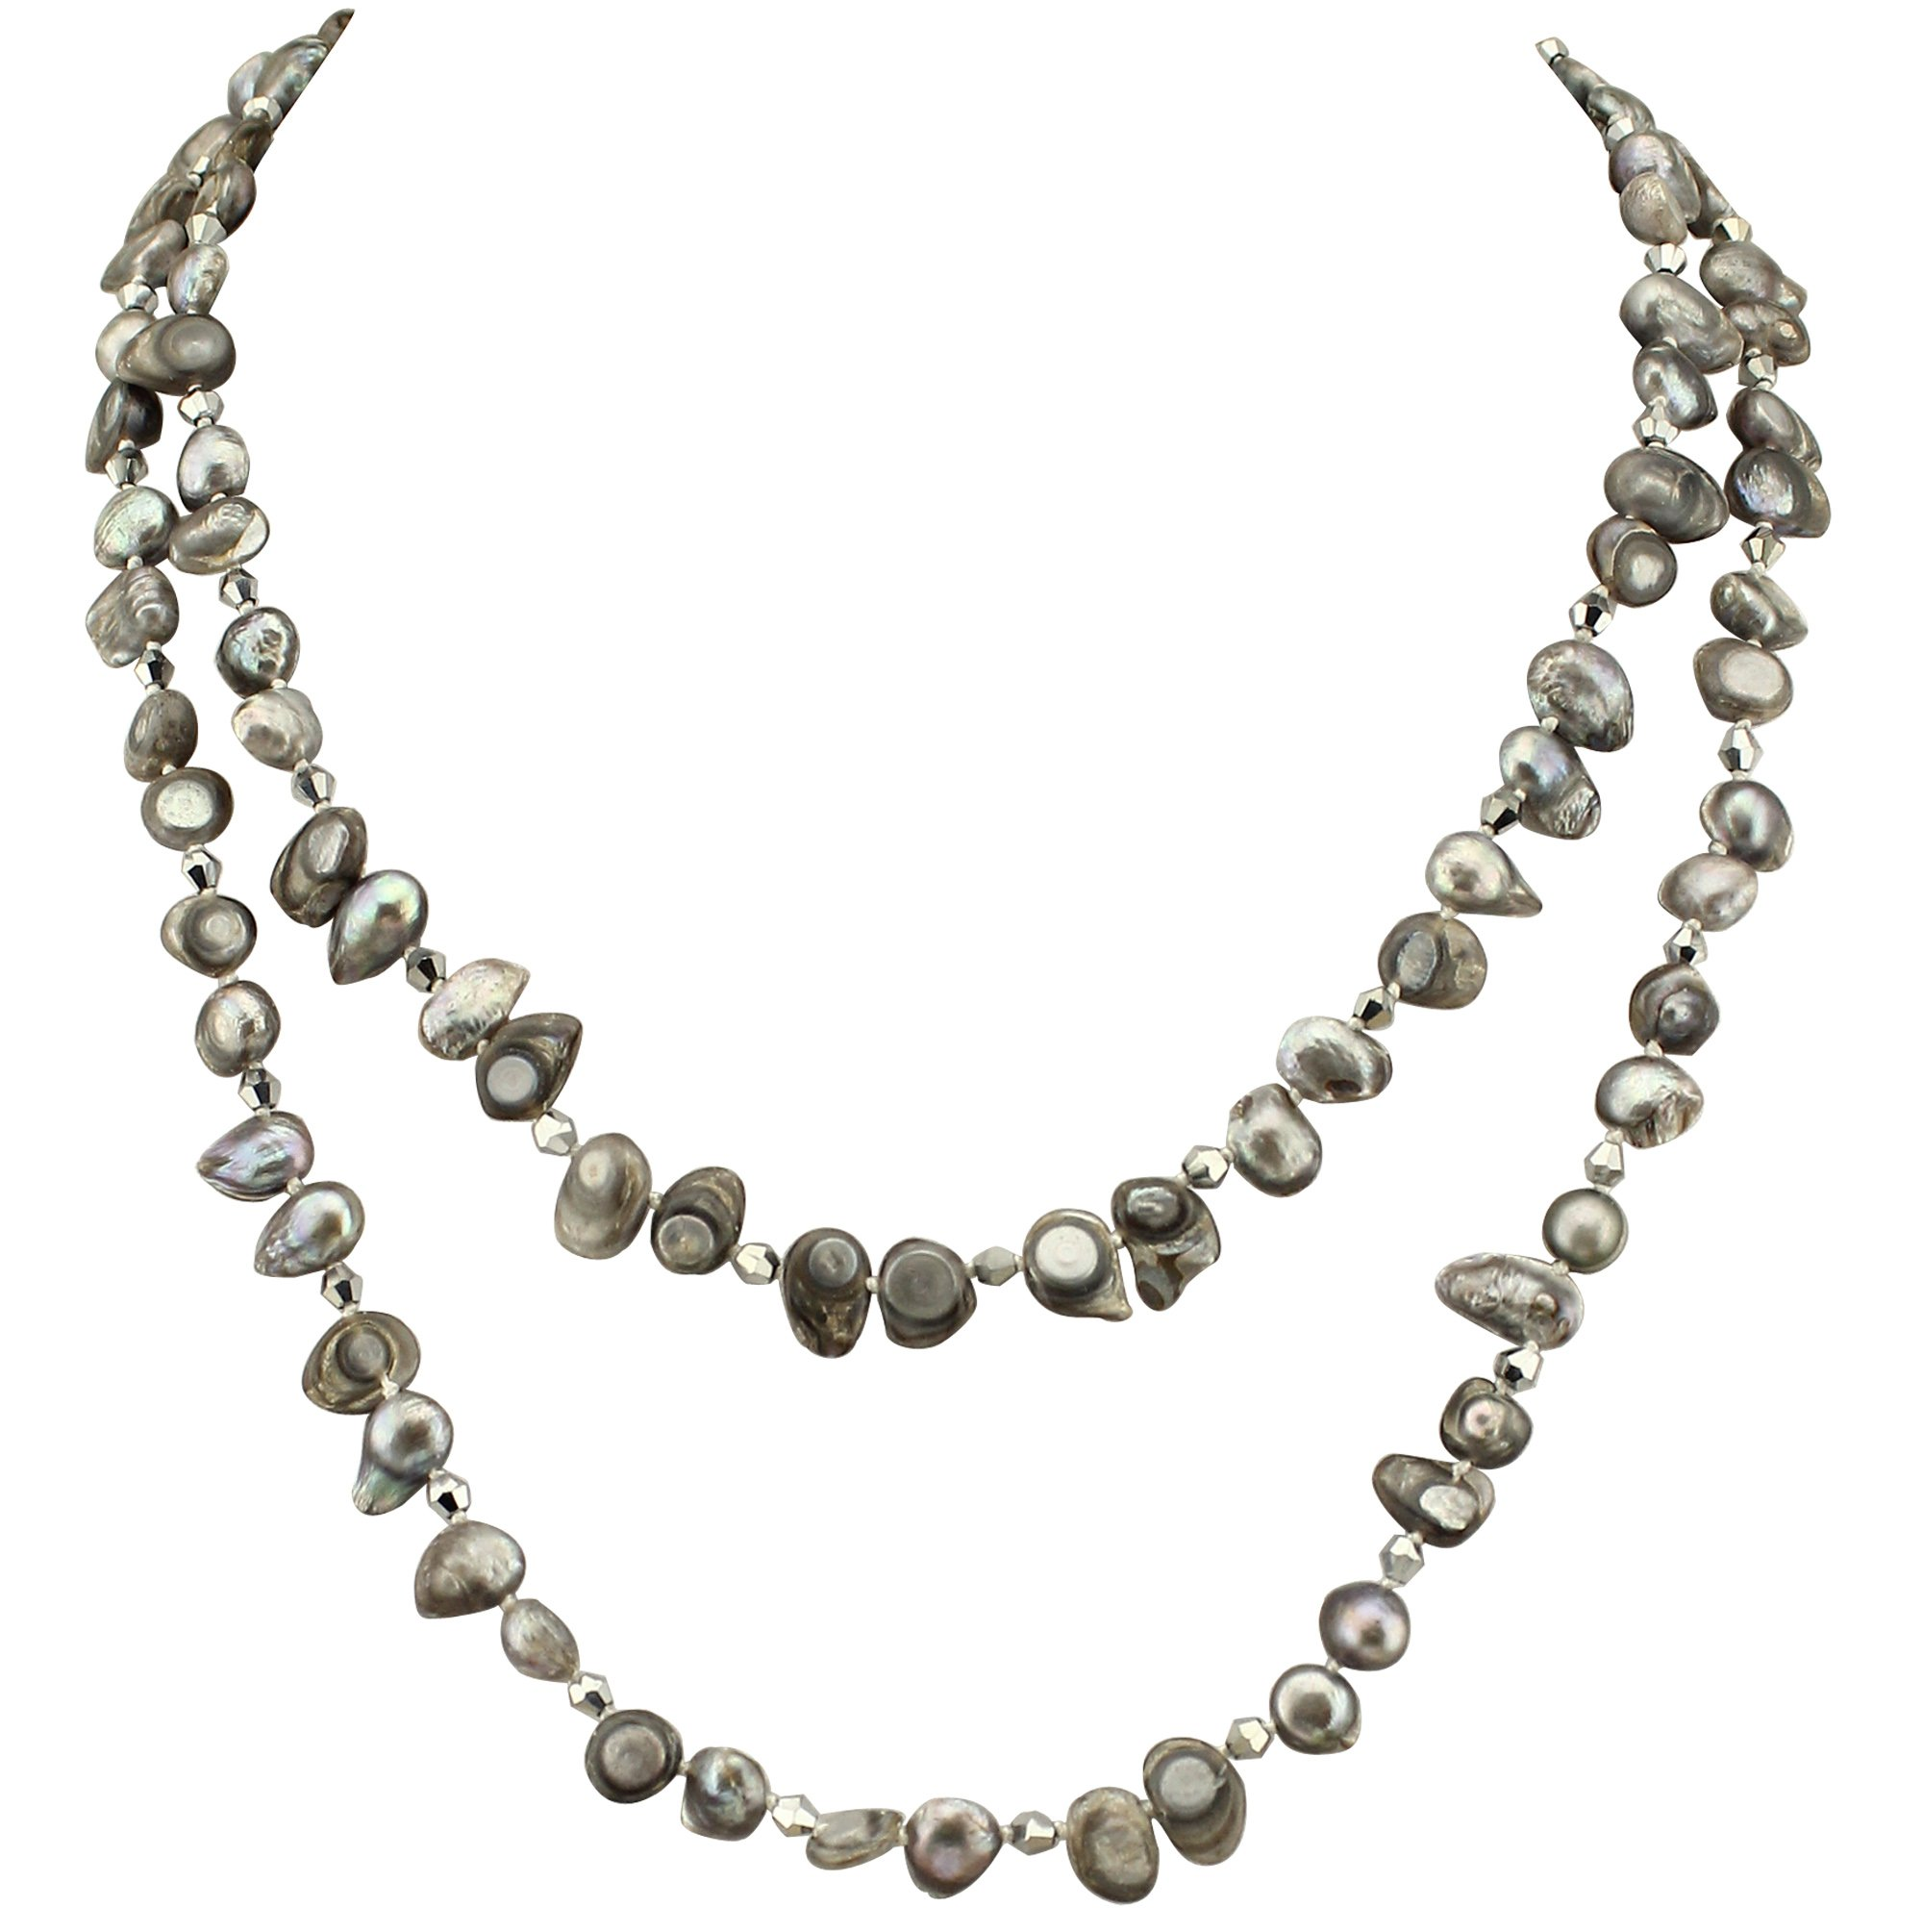 Freshwater Cultured Pearl Beaded Necklace Long Pearl Strand Necklace Handmade Jewelry 47''